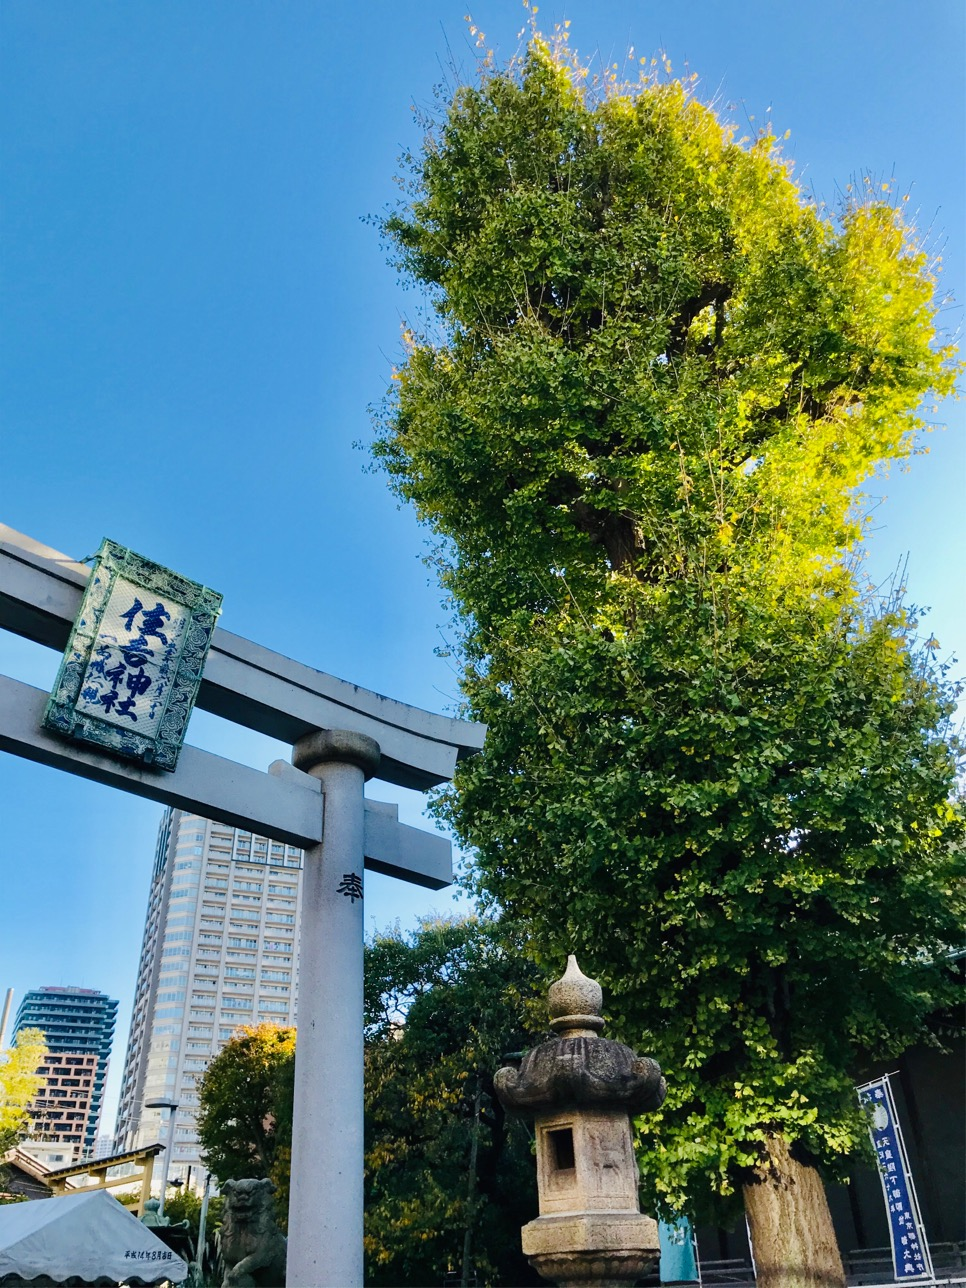 Does fanwise-topknot hairstyle - Sumiyoshi-jinja Shrine - 0 0 luck to grow erectly in the sky of Tsukuda improve? Three selections of Shinto shrines where golden gingko nut wins